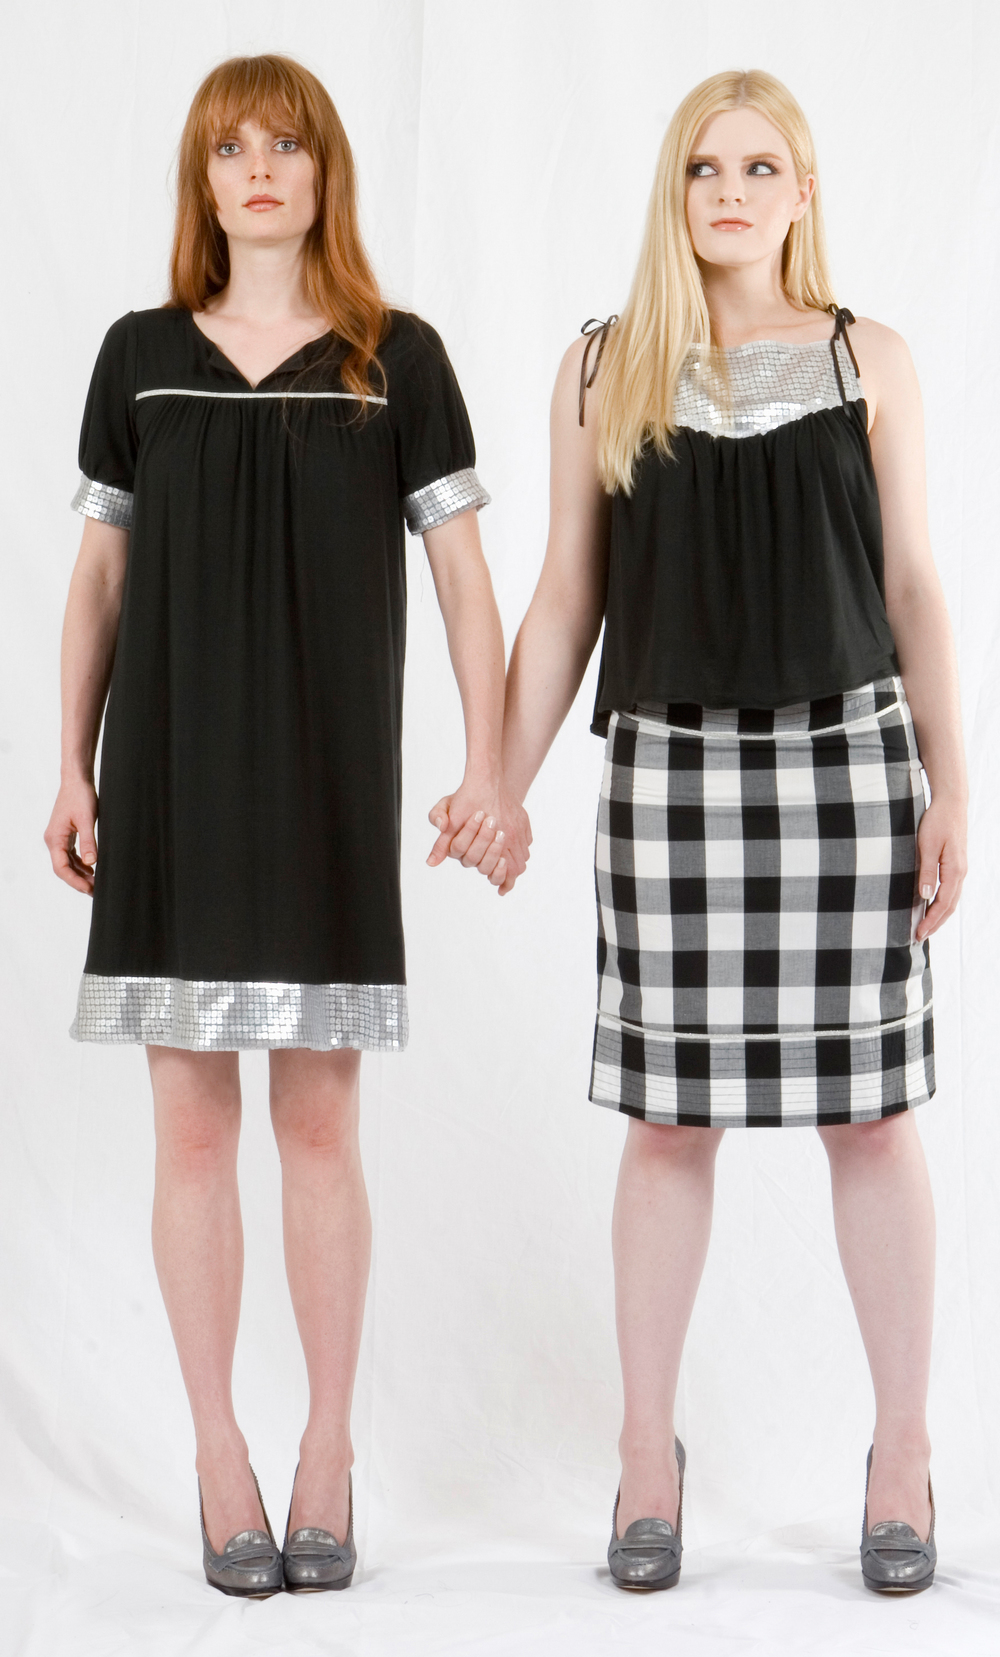 Edie Dress in Black Jersey w/ Silver Sequined Hem & Sleeve Bands & Metalic Trim.   On the right:   Triangle Top in Black Jersey w/ Silver Sequined Yoke & Faux Leather Ties.  Banded Pencil Skirt in Cotton Gingham w/ Metallic Trim.